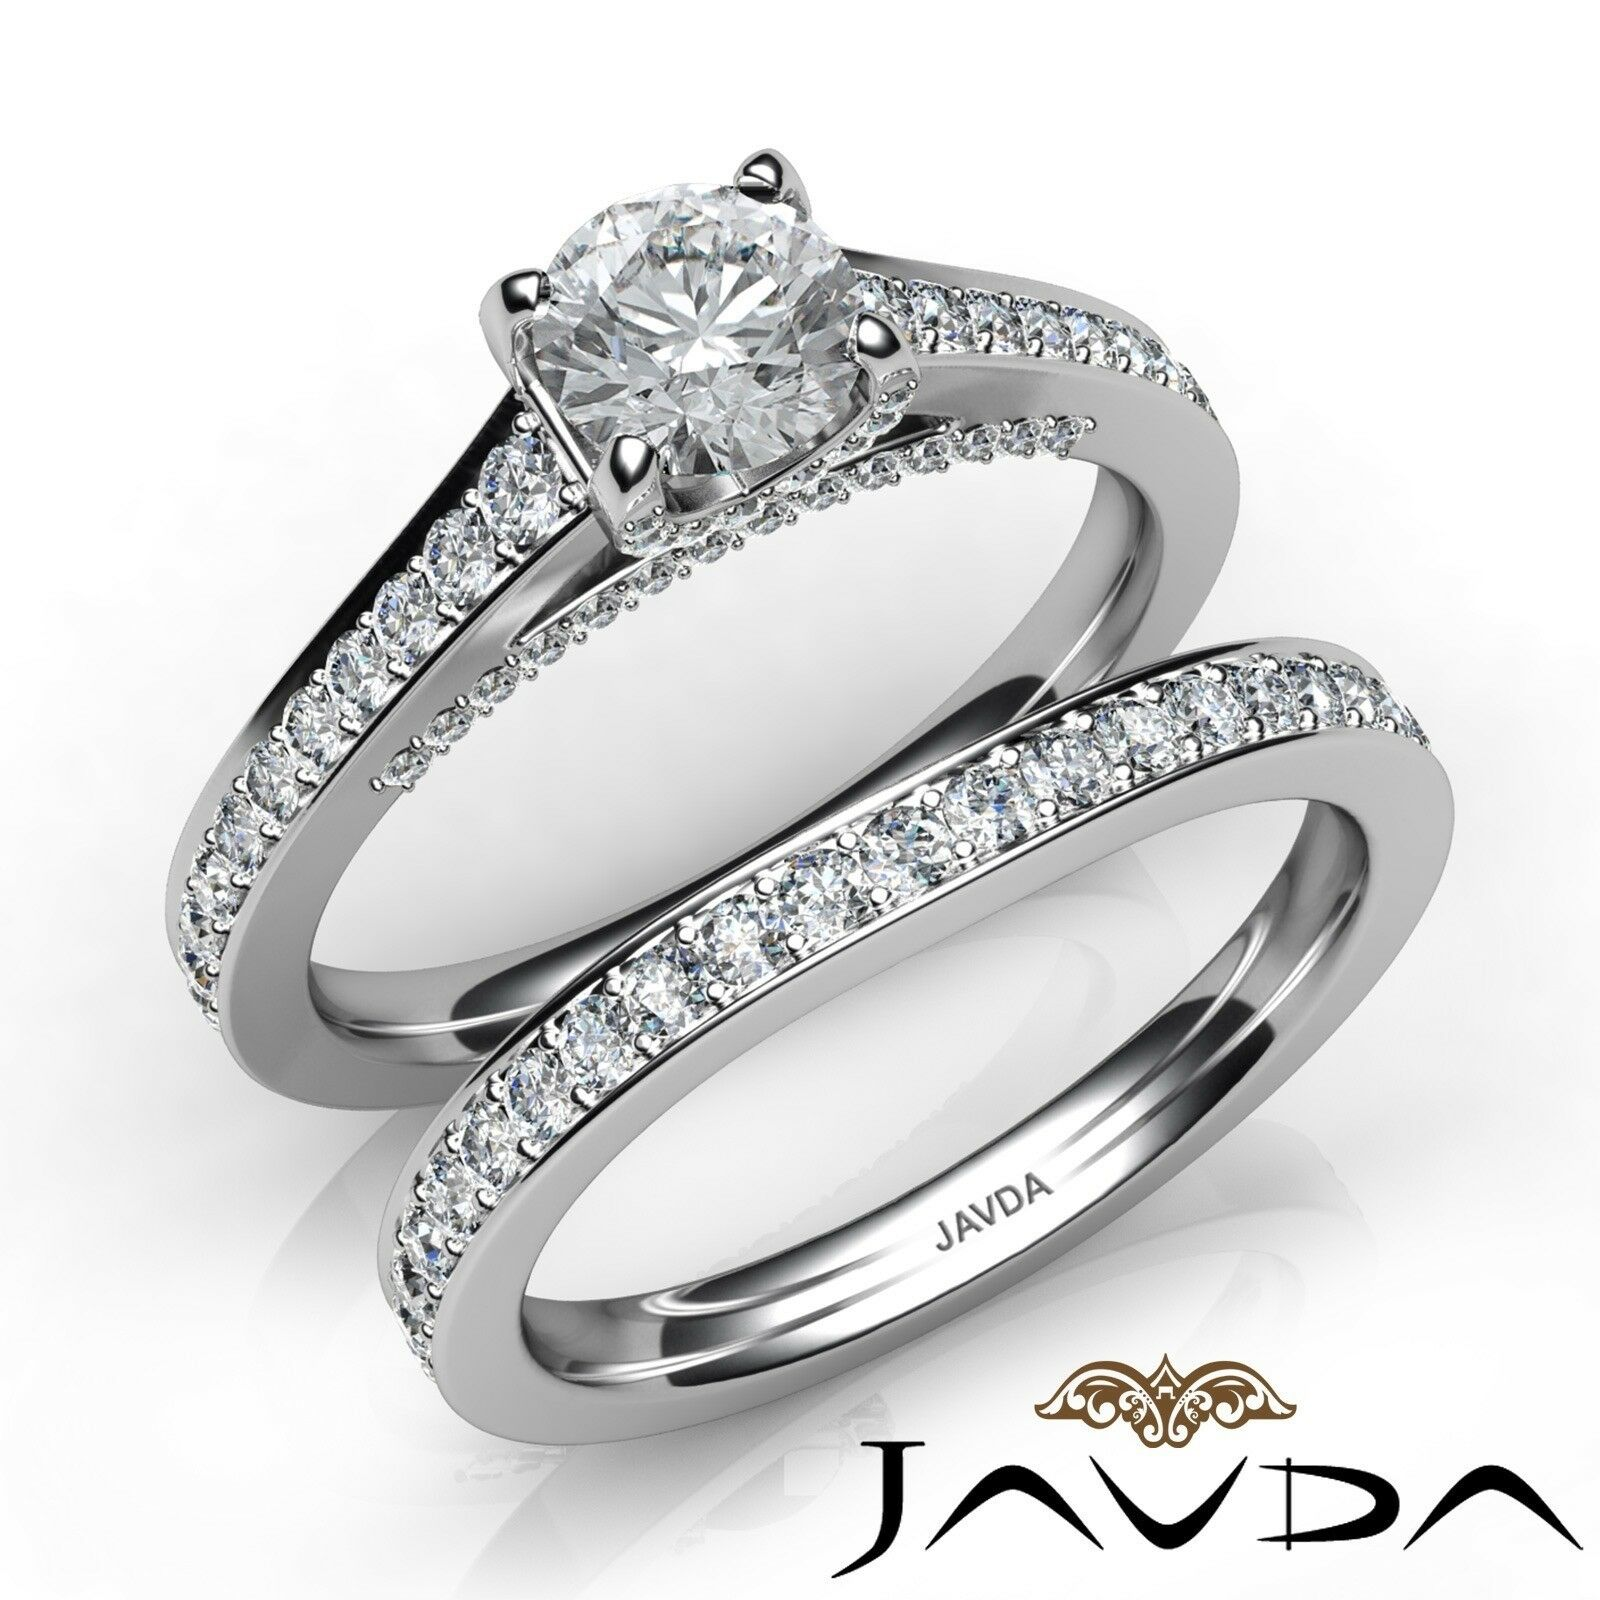 1.85ctw Pave Classic Bridal Set Round Diamond Engagement Ring GIA F-VVS2 W Gold